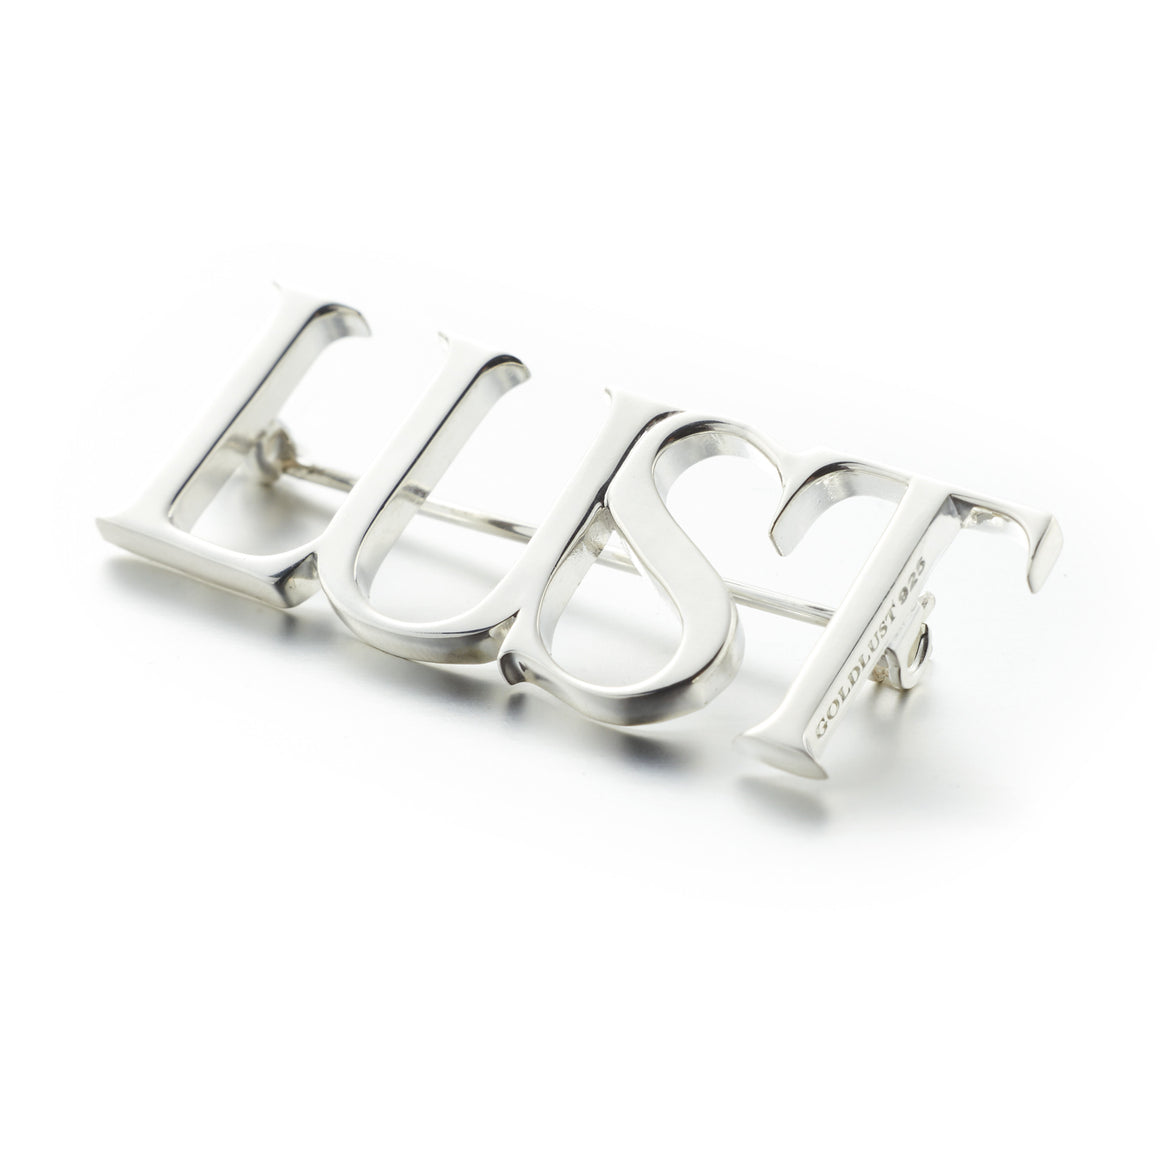 Goldlust London Lust Brooch in 925 Sterling Silver